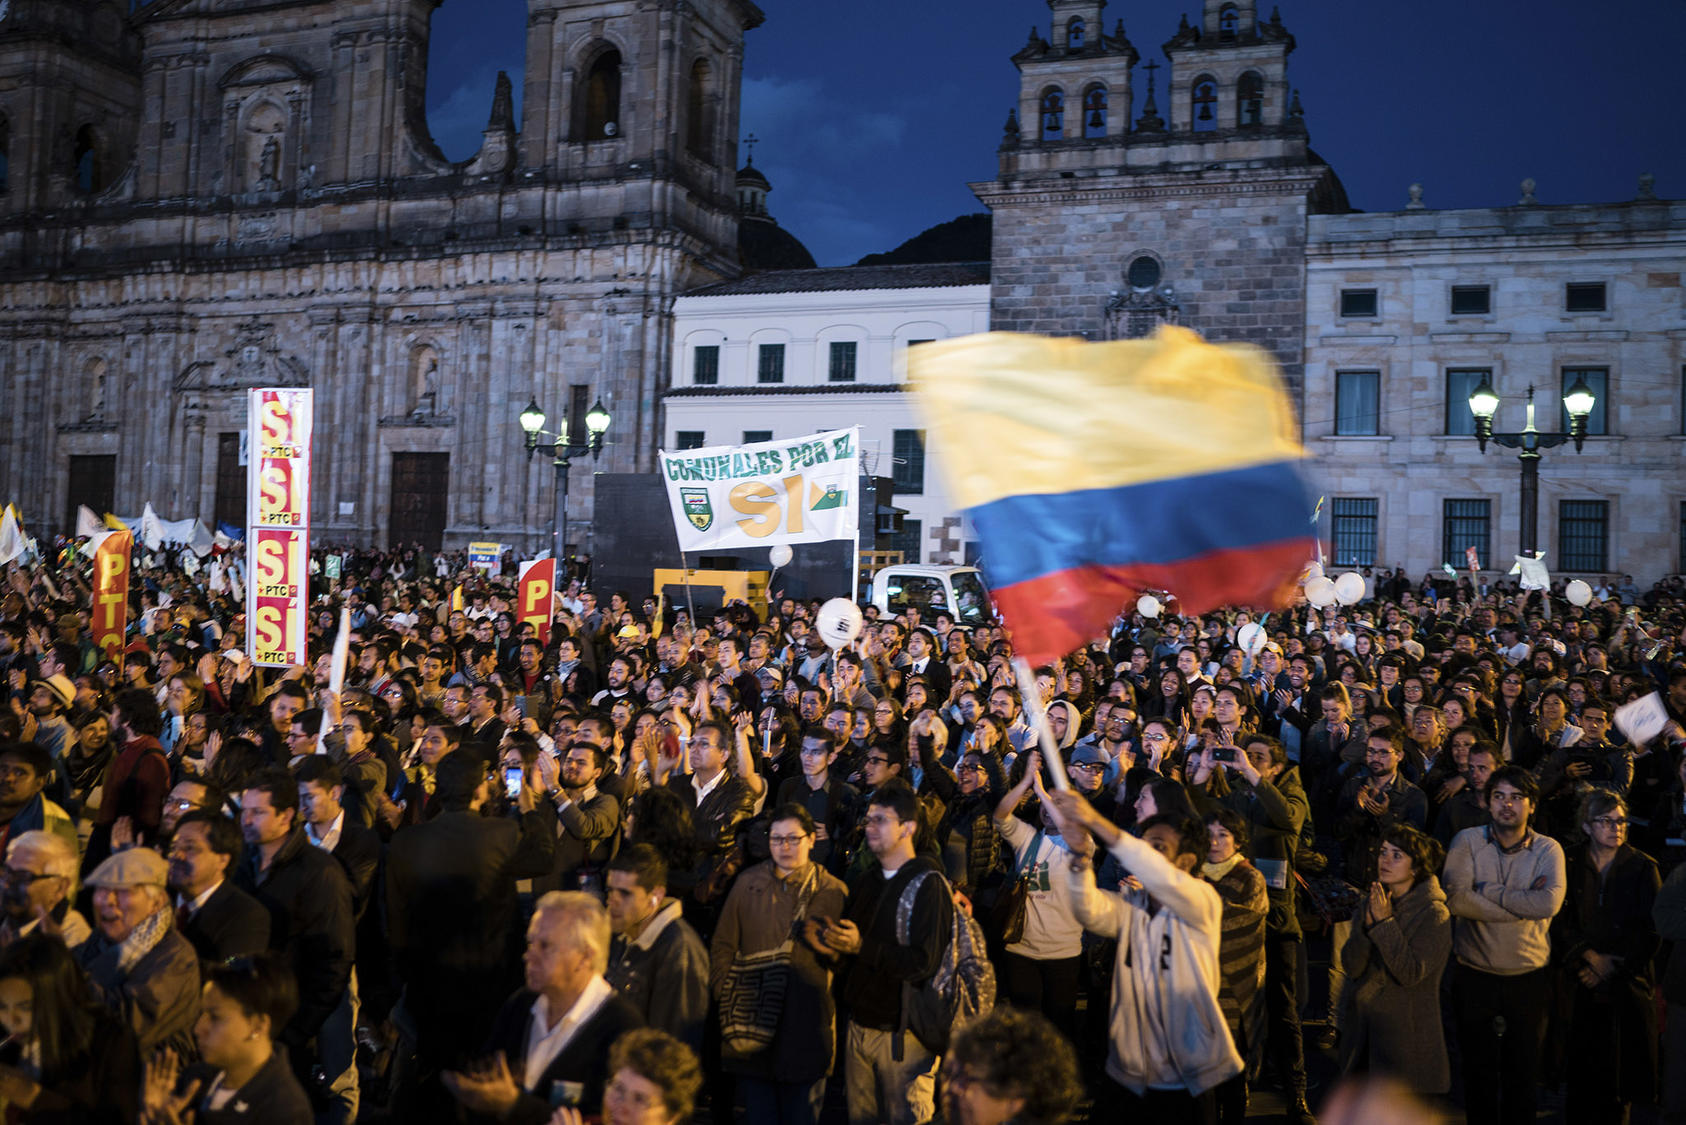 People celebrate the signing of a peace agreement between the Colombian government and the FARC, in Bogota, Sept. 26, 2016. (Federico Rios Escobar/The New York Times)